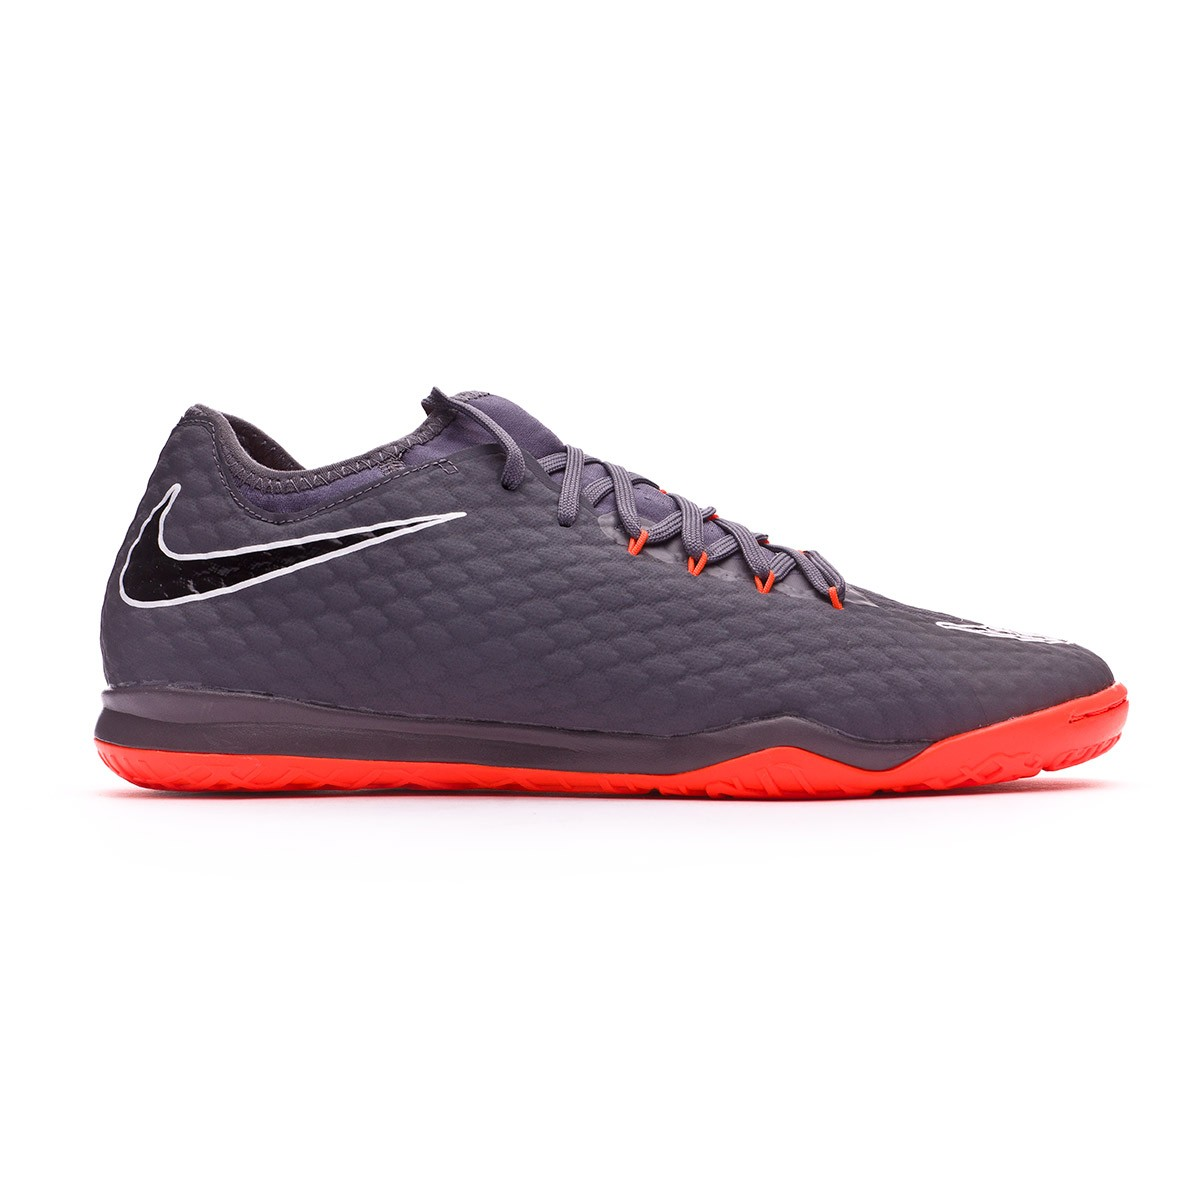 the best attitude 2f1c6 9b7db real nike hypervenom lewandowski kopen b76cc 190d5